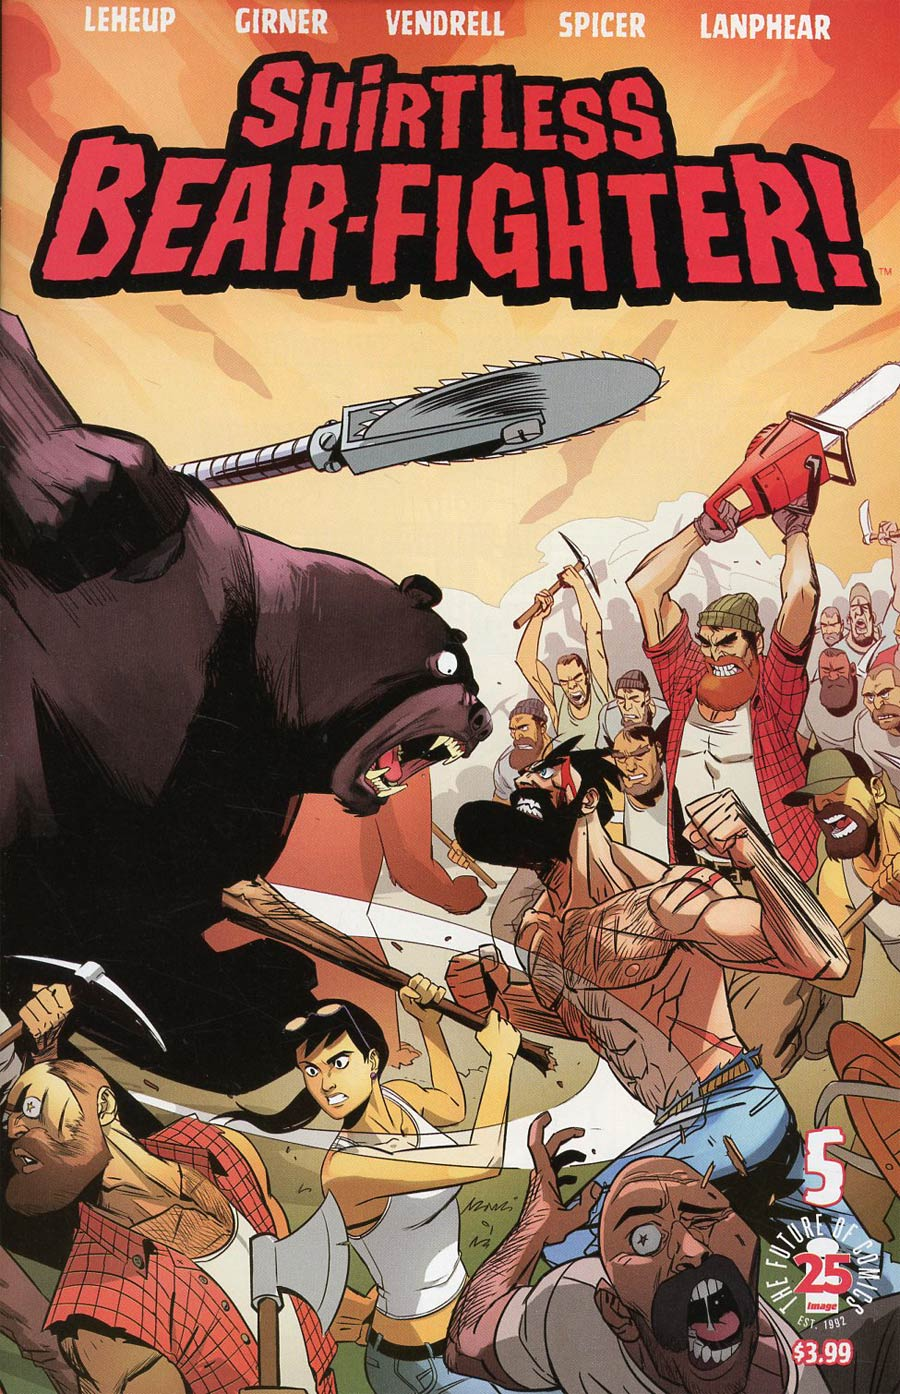 Shirtless Bear-Fighter #5 Cover C Variant Nil Vendrell Cover